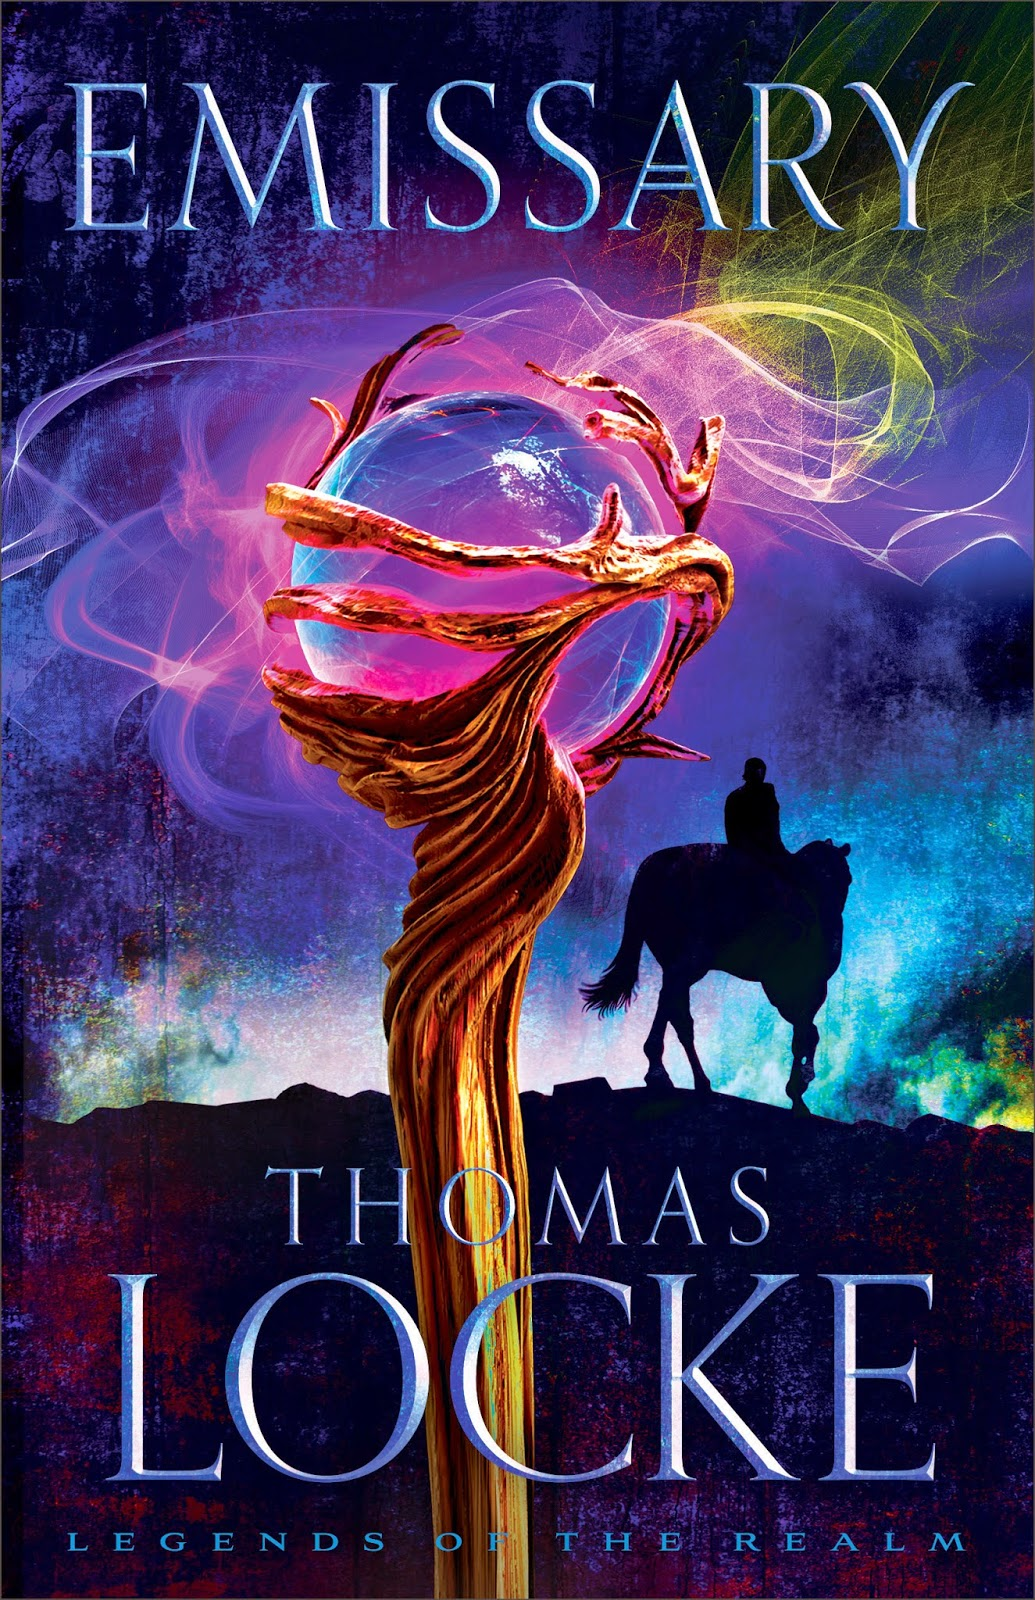 Emissary (Legends of the Realm, Book 1) by Thomas Locke